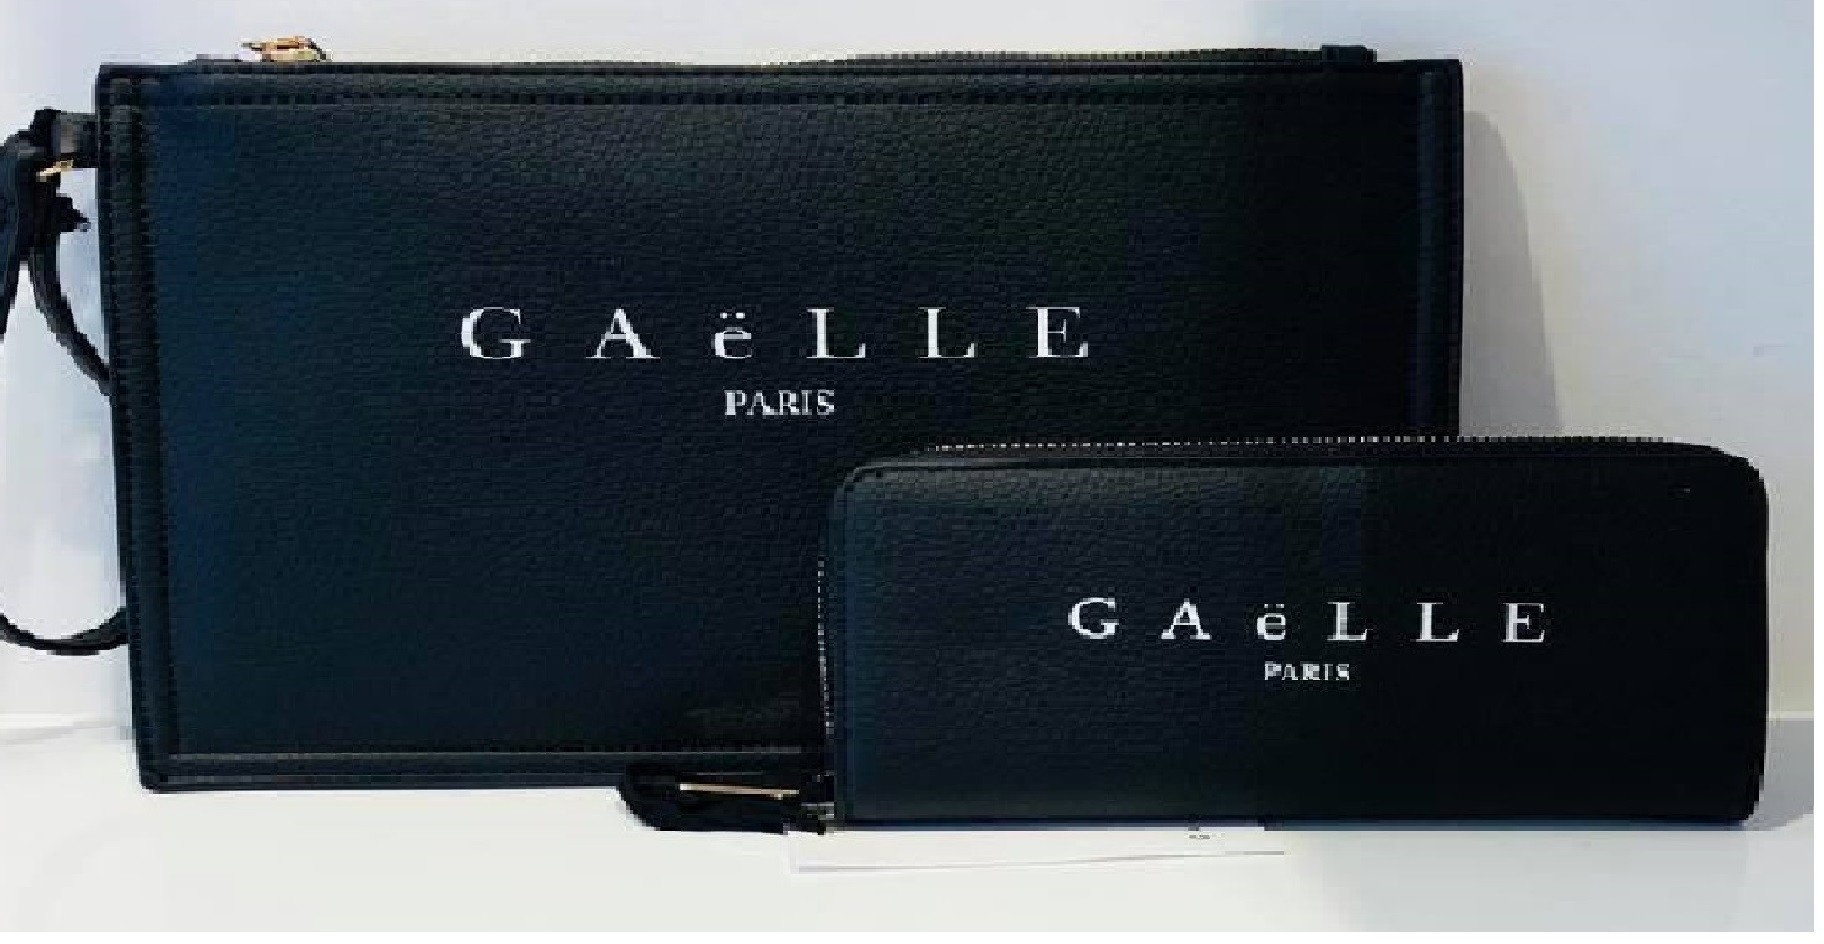 Gaelle Paris Shop online